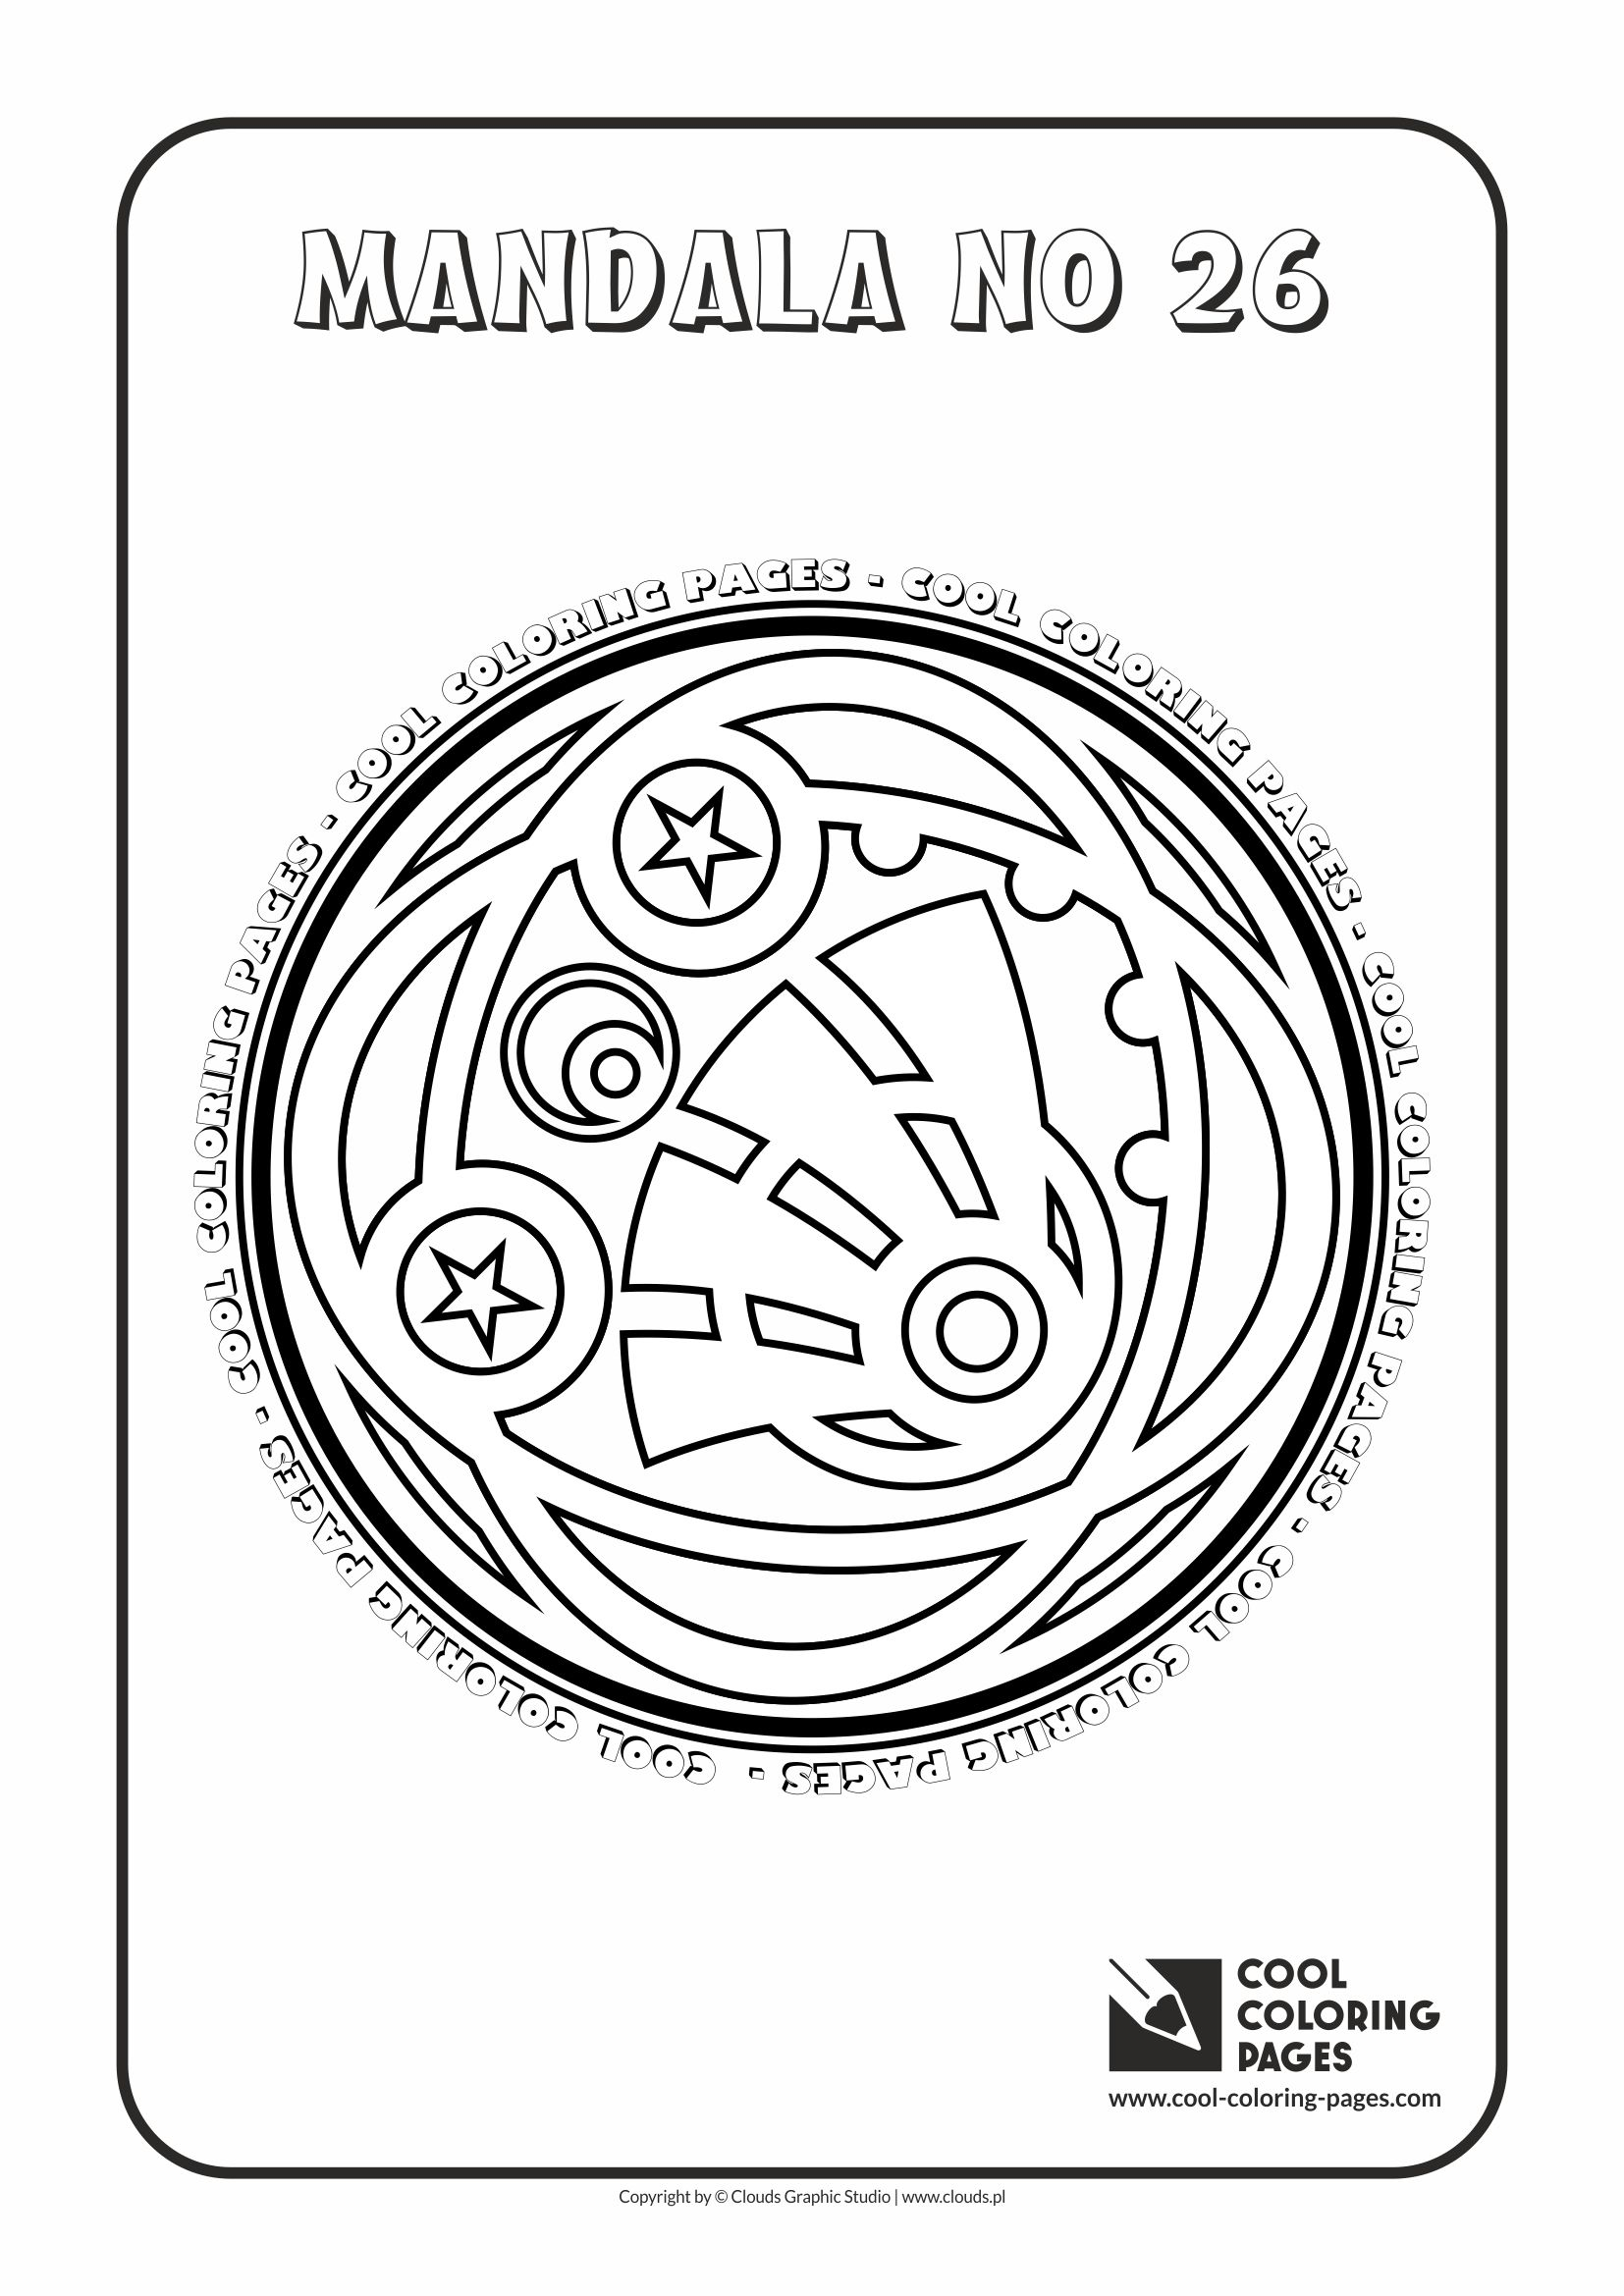 Cool Coloring Pages - Mandalas / Mandala no 26